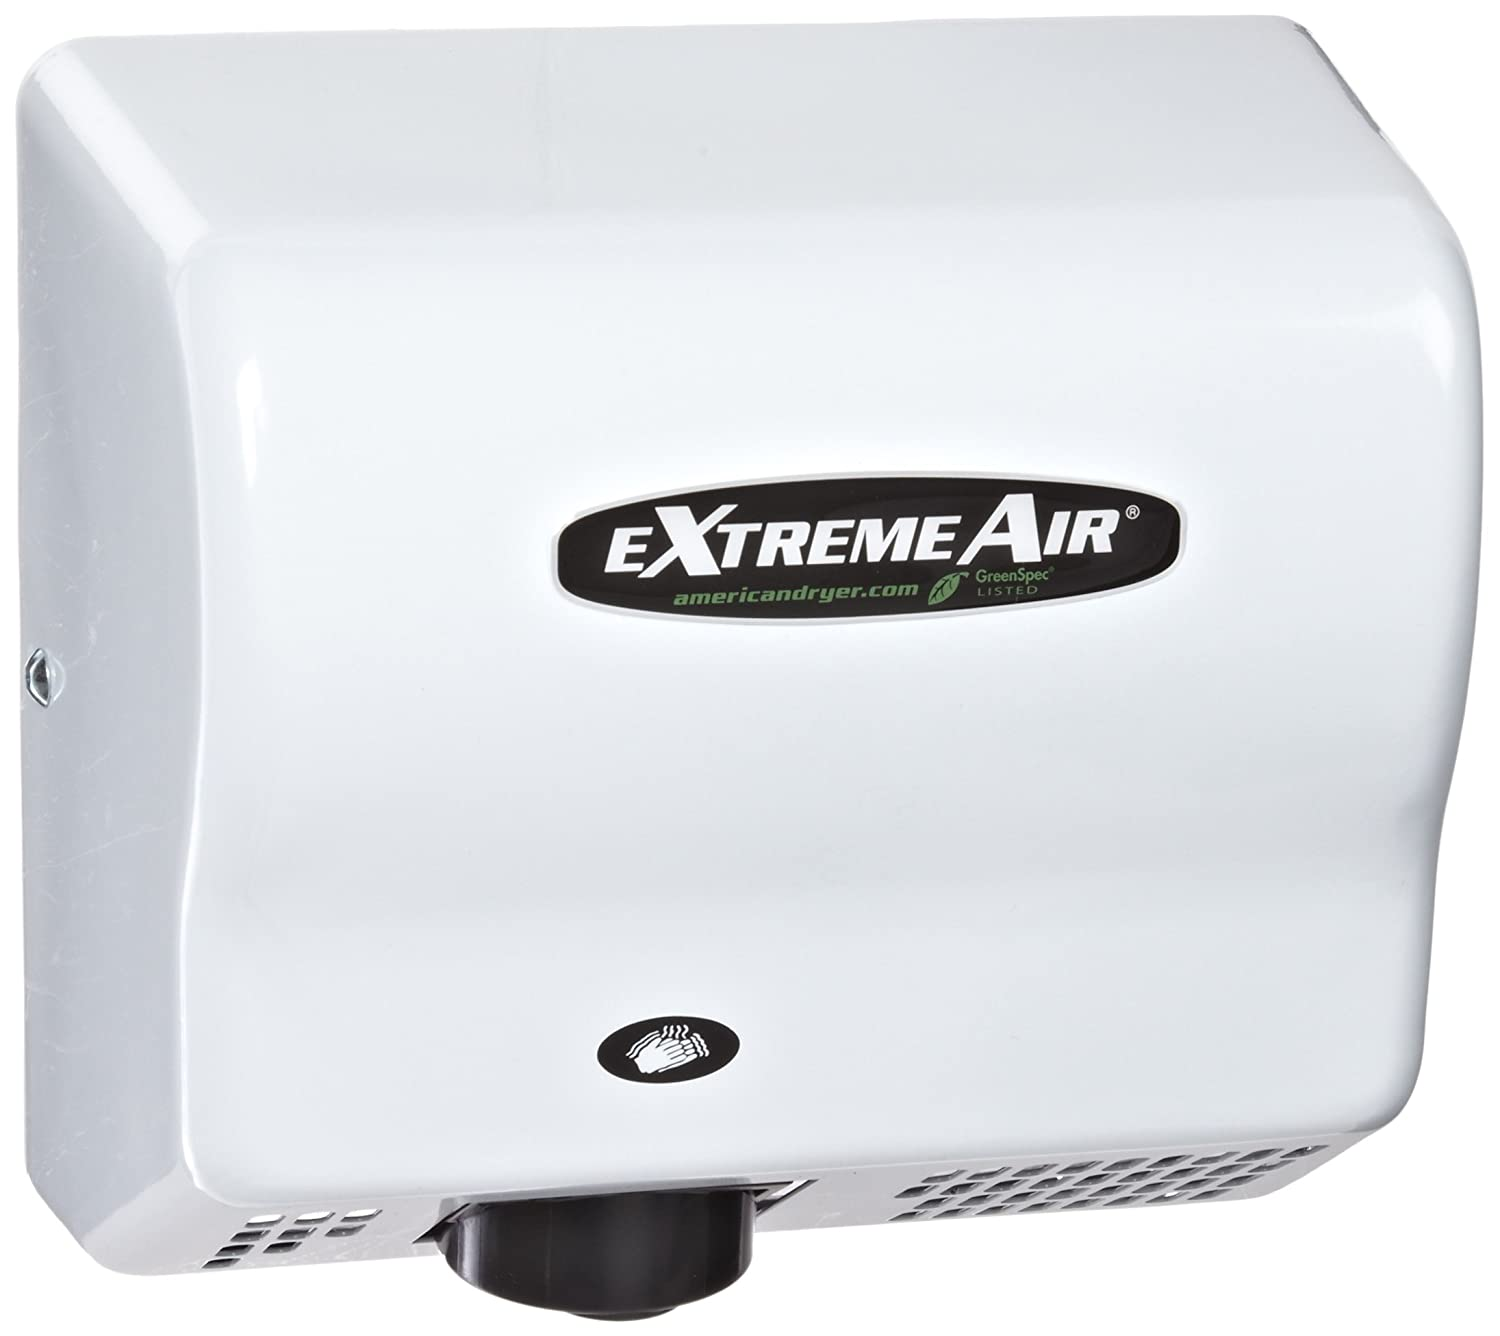 Image of Hand Dryers American Dryer ExtremeAir EXT7-M Steel Cover High-Speed Automatic Hand Dryer, 12-15 Second Dries, 100-240V, 540W Maximum Power, 50/60Hz, White Epoxy Finish